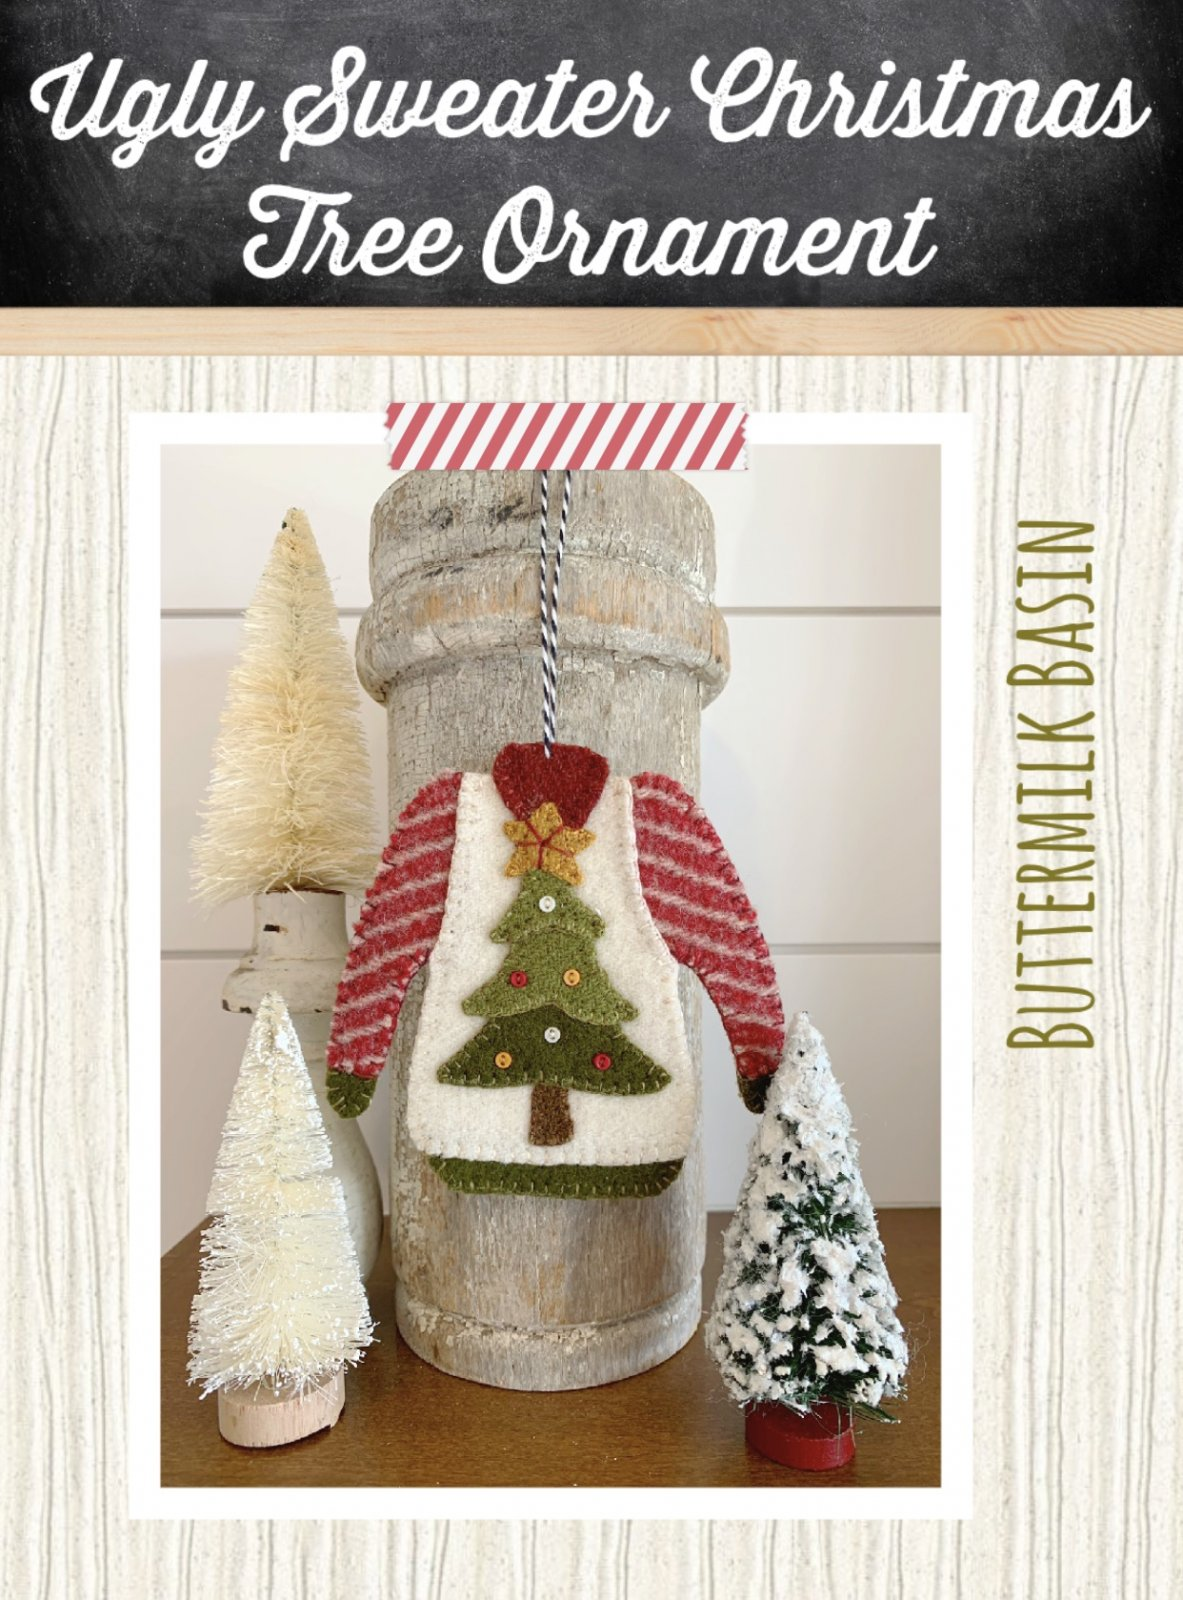 Ugly Sweater Ornament *Christmas Tree * Pattern & Kit